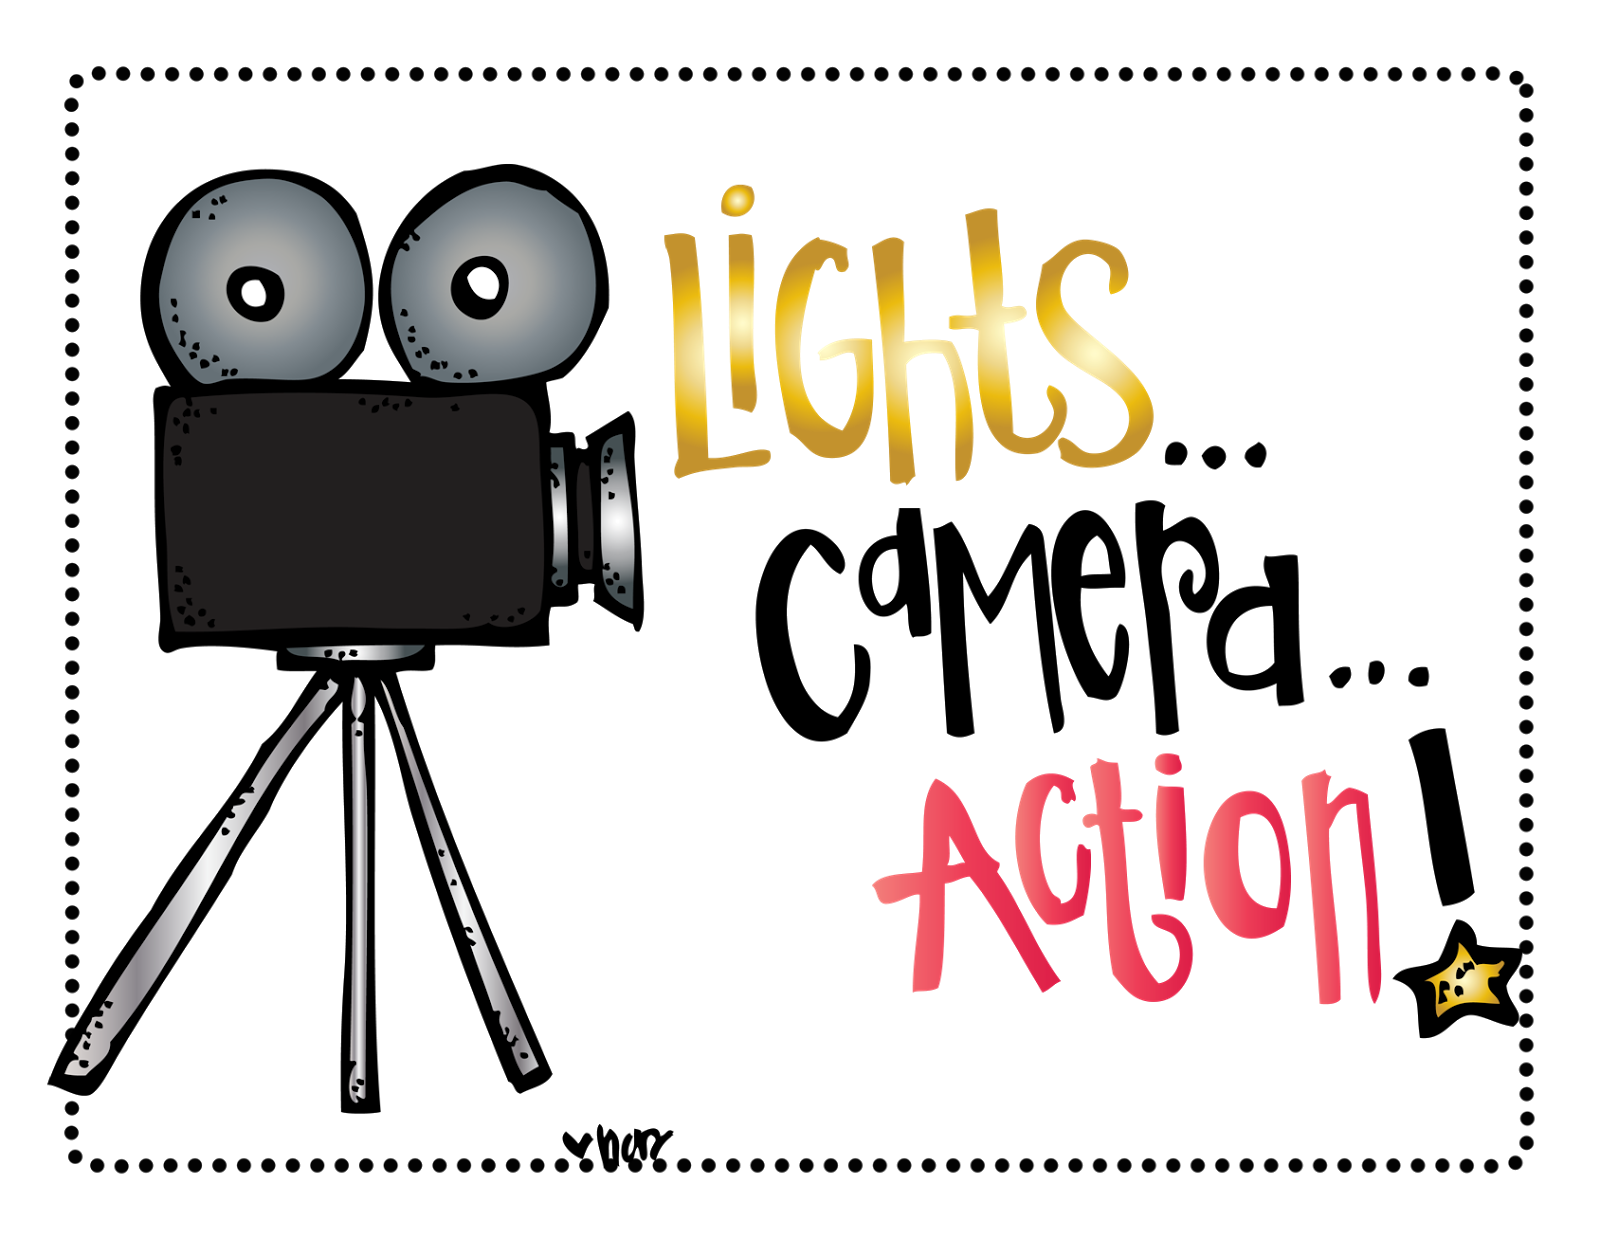 Lights Camera Action Clip Art (digital art by melonheadz)